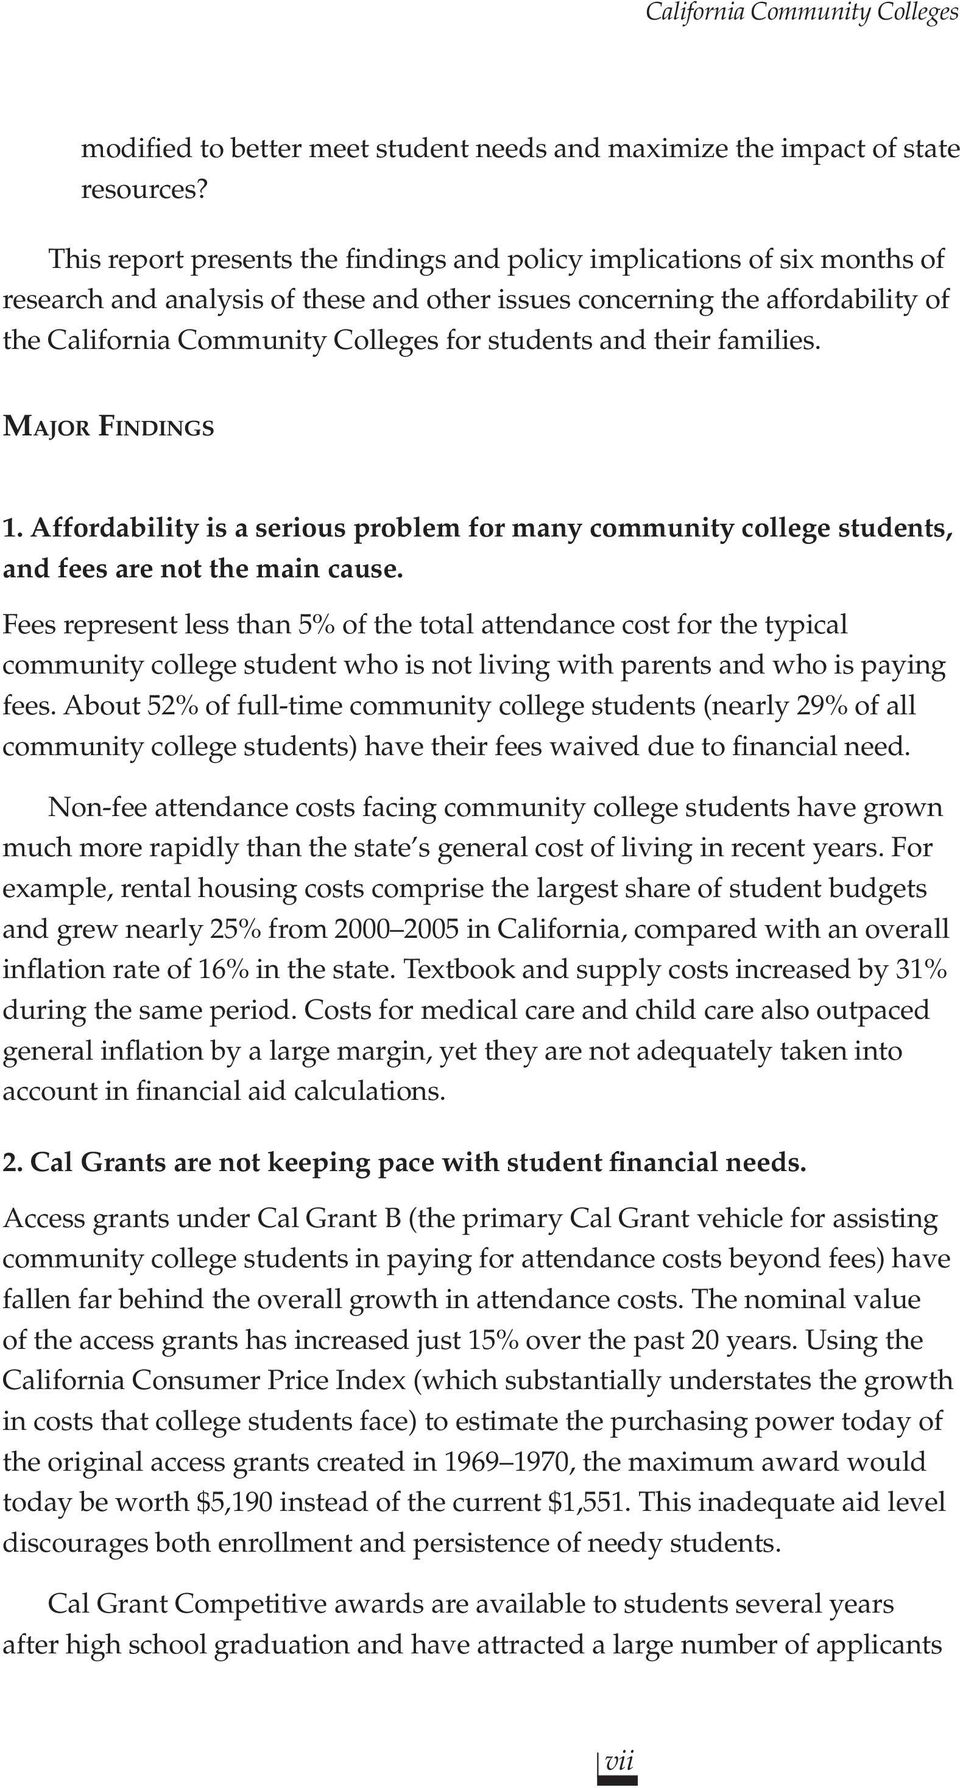 students and their families. MAJOR FINDINGS 1. Affordability is a serious problem for many community college students, and fees are not the main cause.